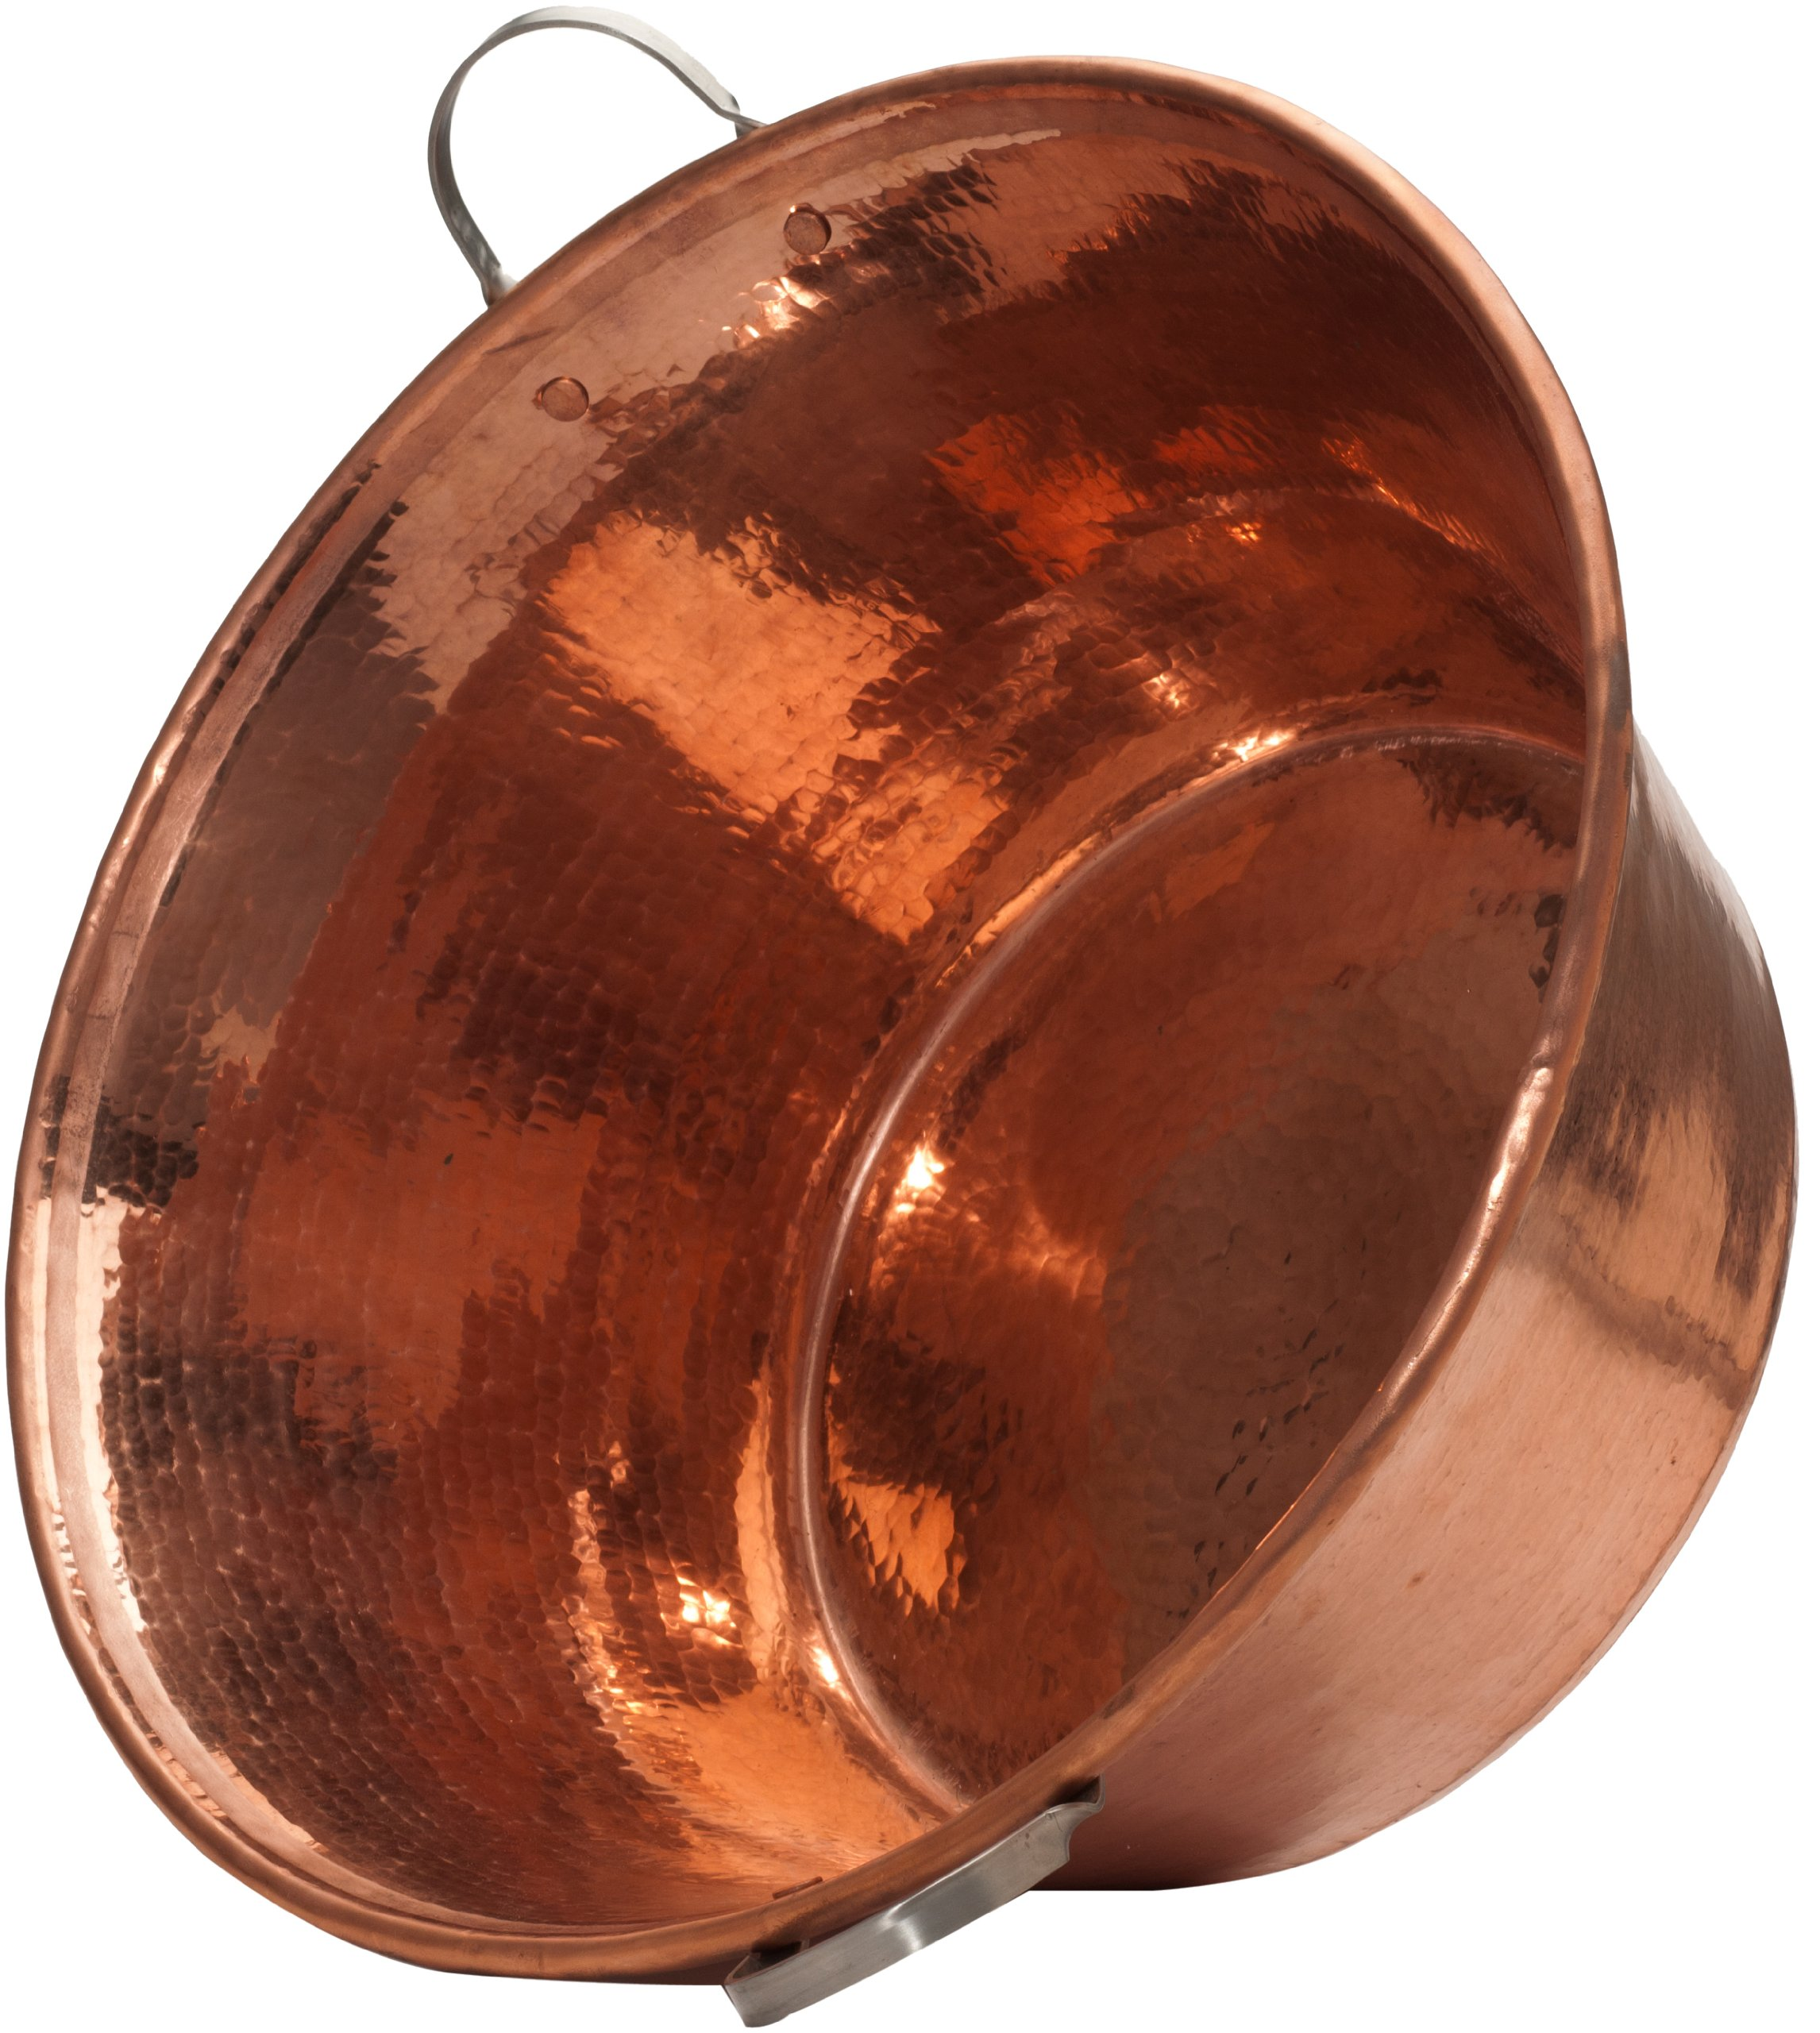 Sertodo Copper, Hand Hammered 100% Pure Copper, Permian Basin with Stainless Steel Handles, 20 inch by 9 inch high